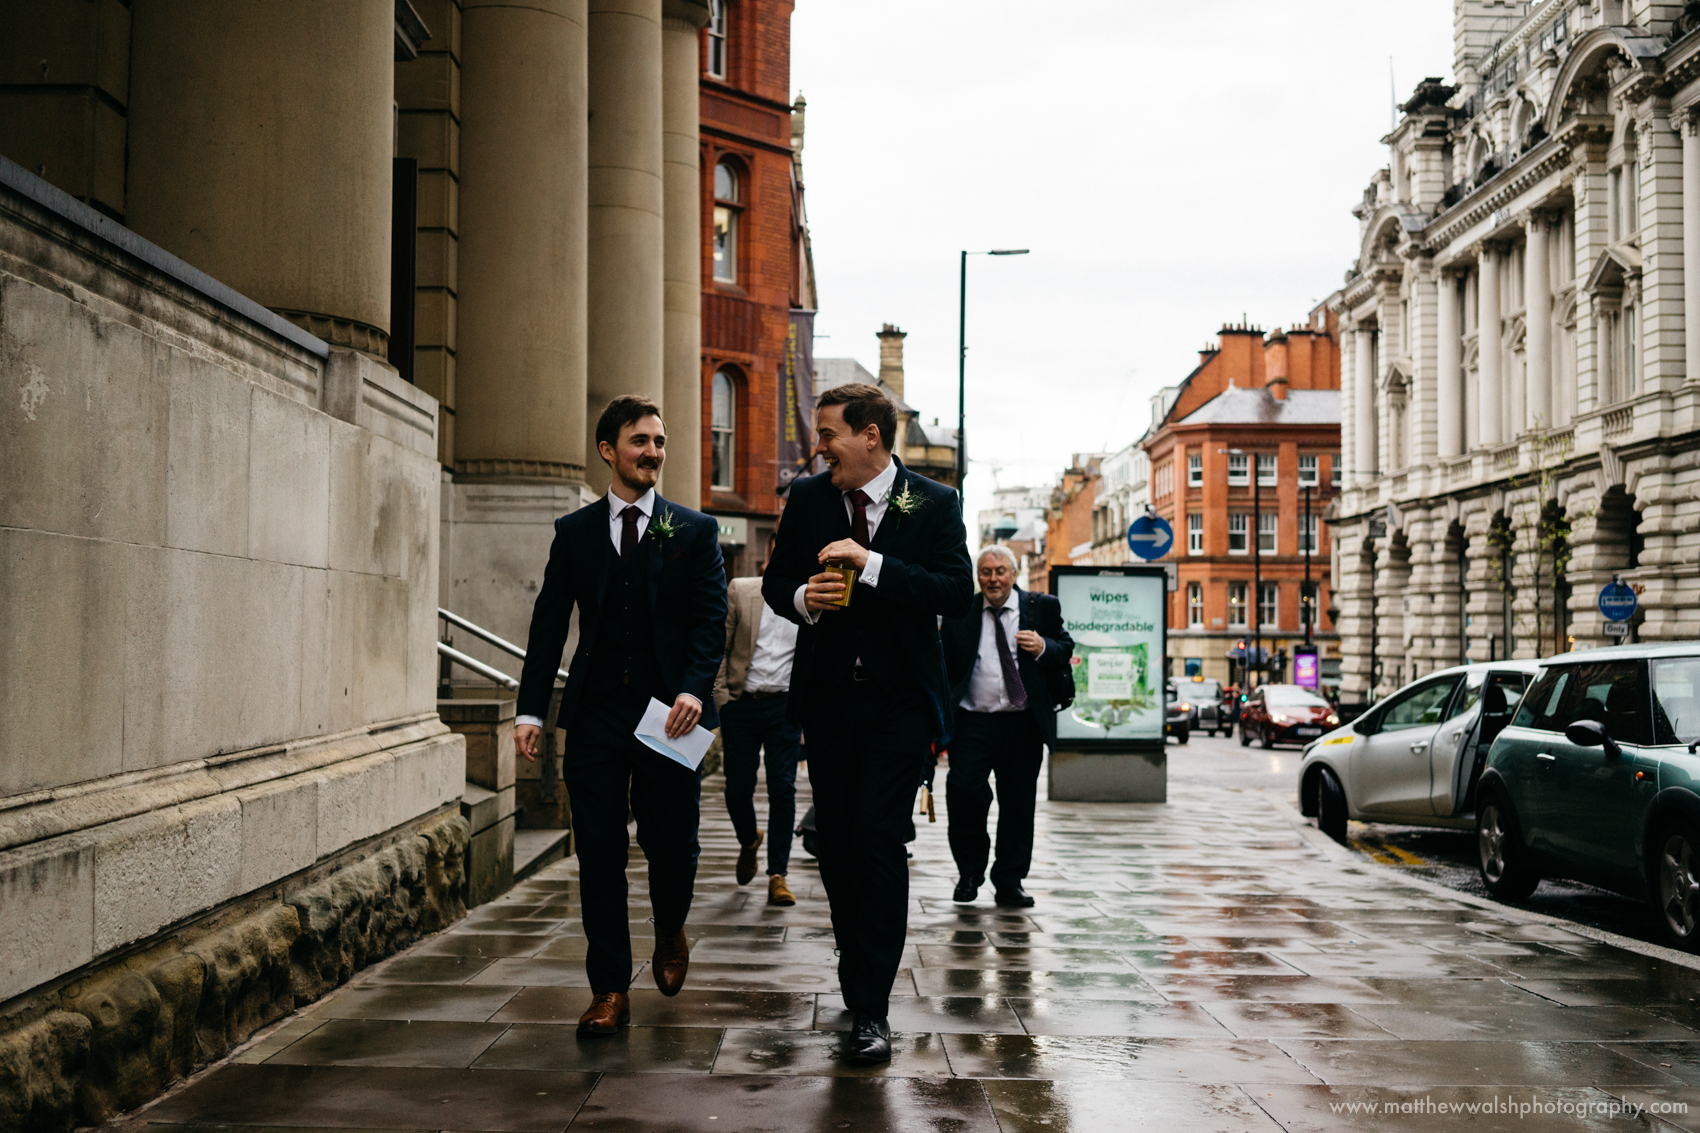 The best man and groom share a wee tipple from a hip flask on their walk from the ceremony  to the bar and restaurant